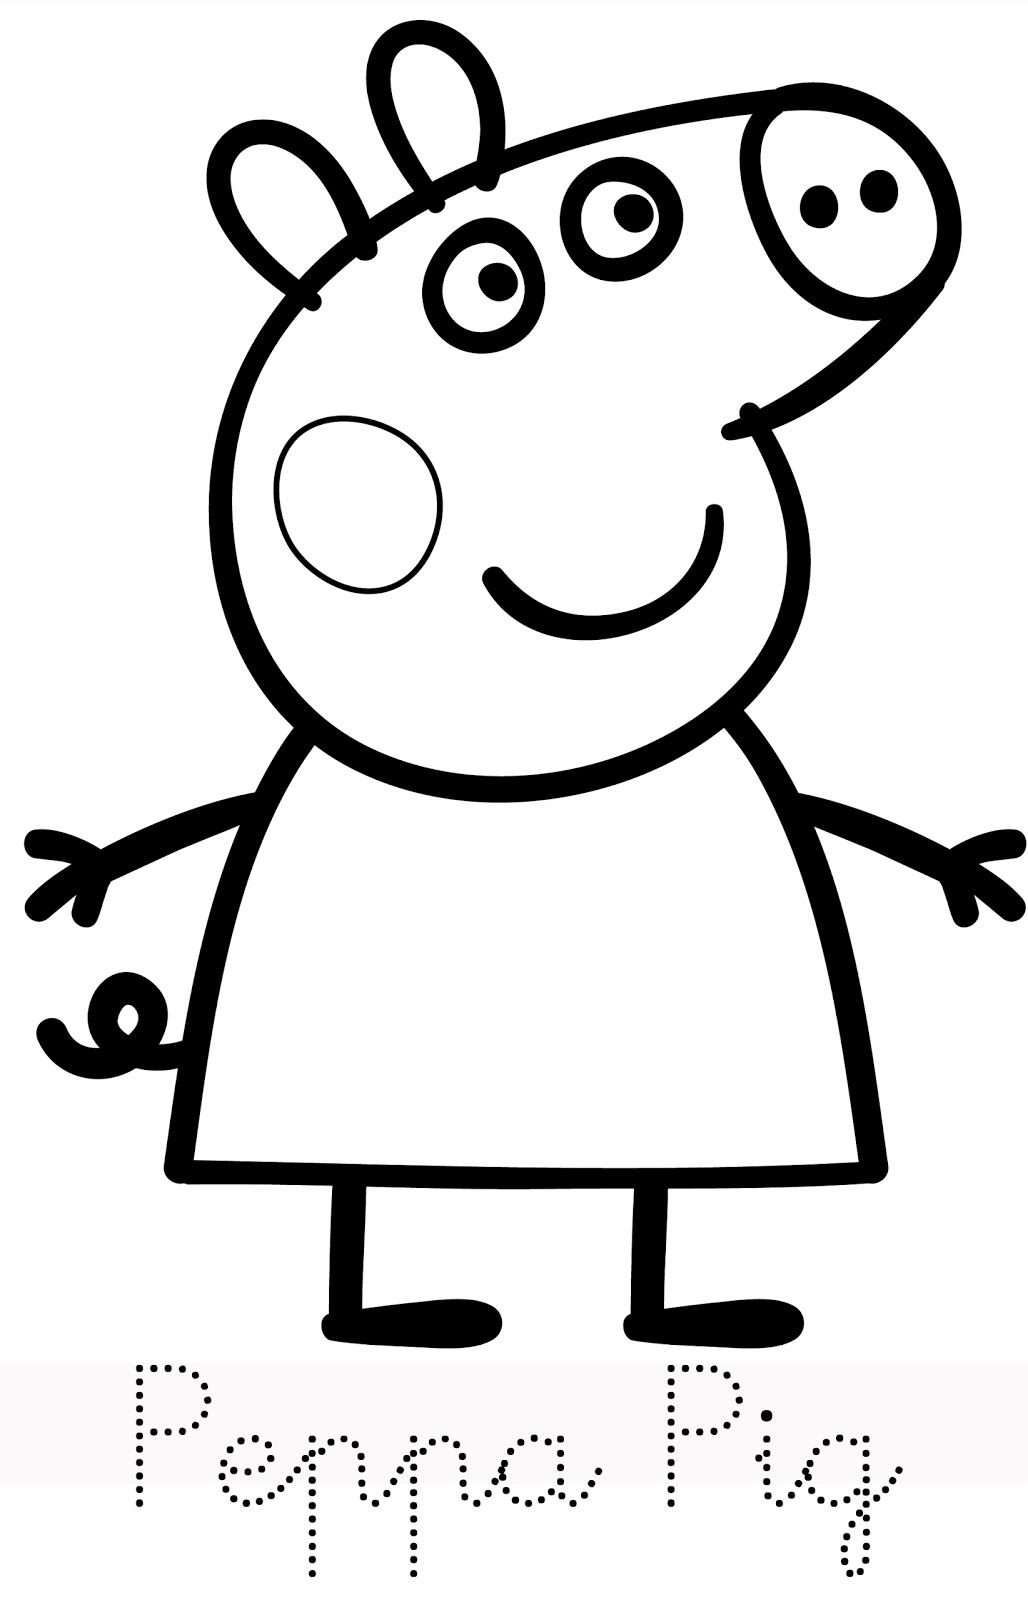 Baby potatoes family of peppa pig for Peppa pig drawing templates